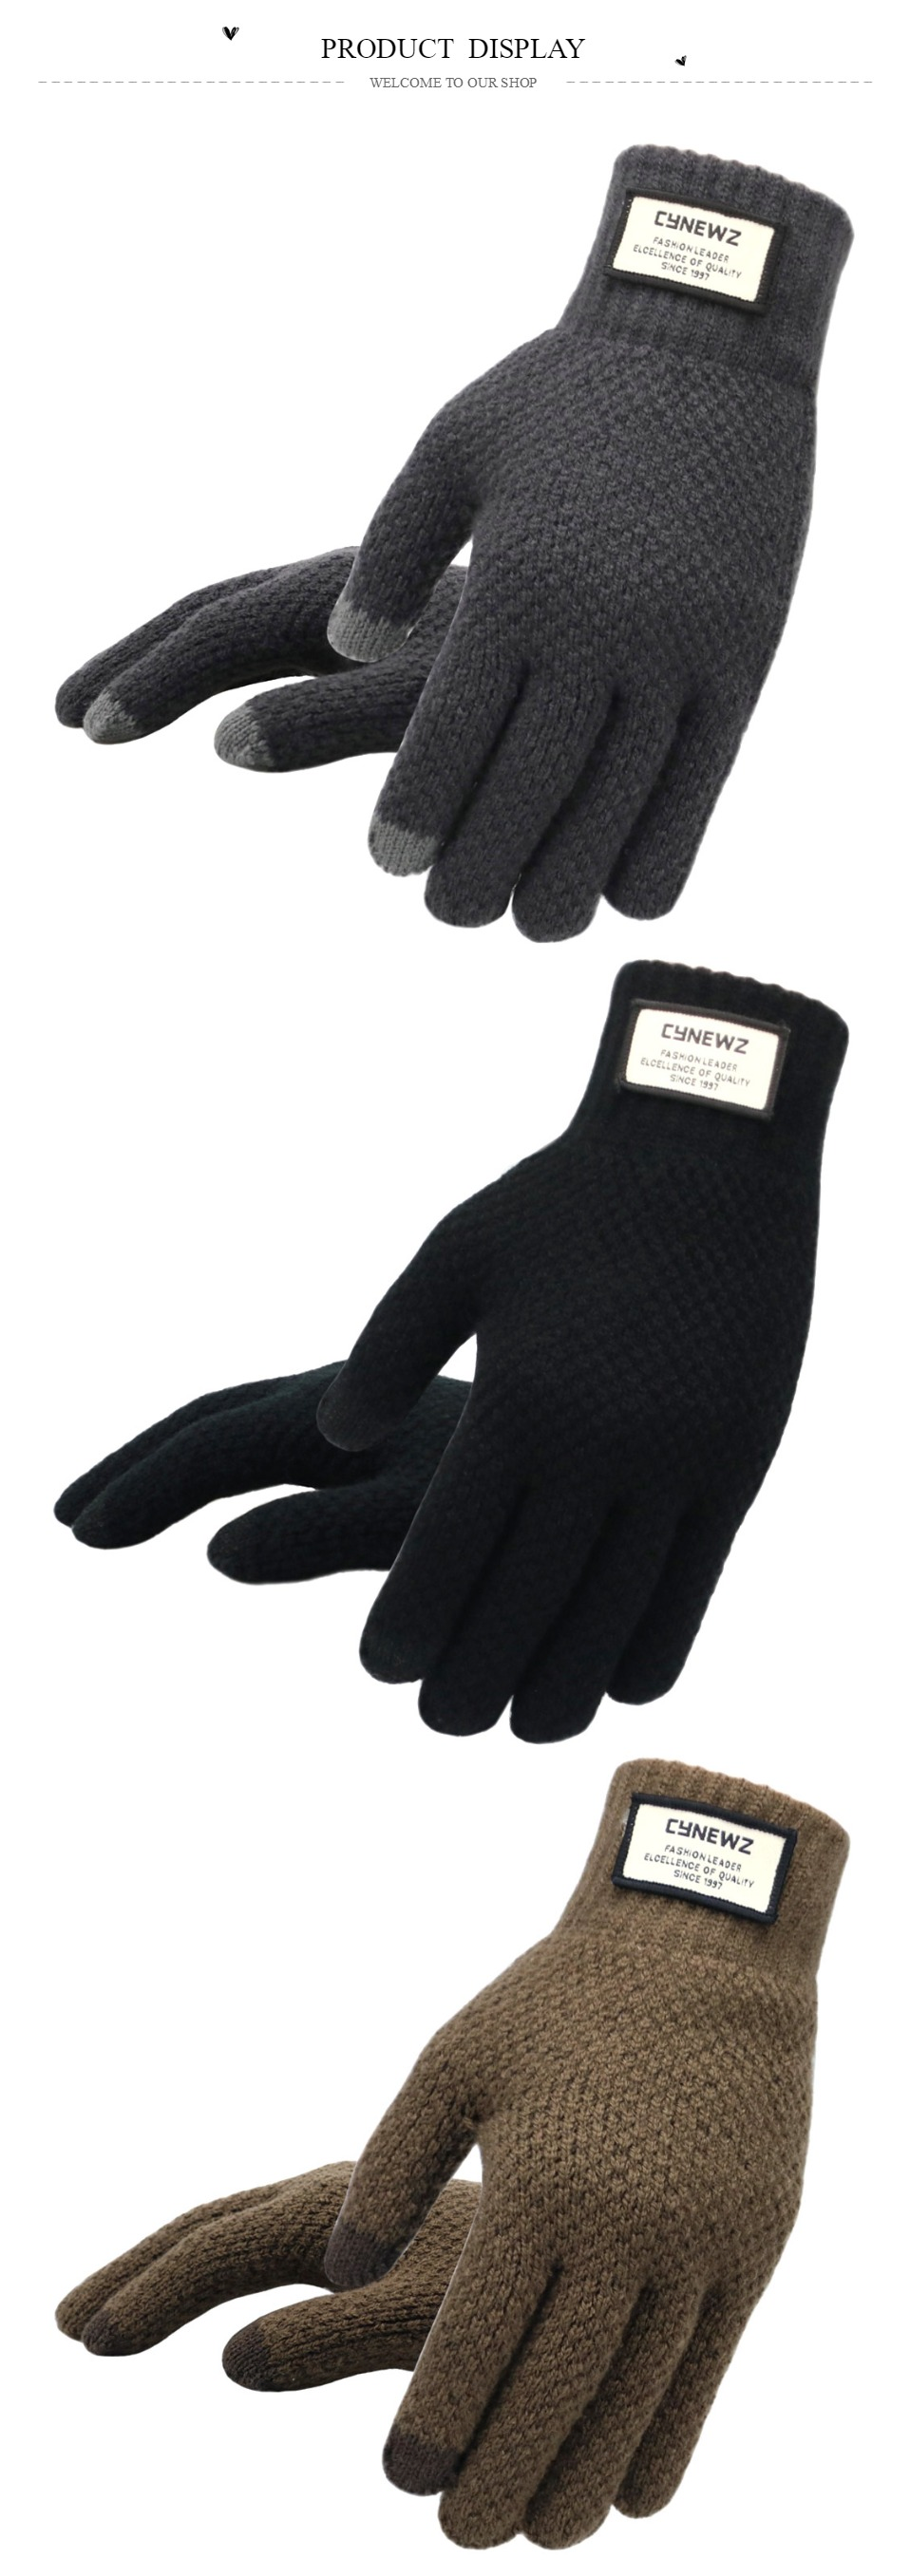 Warm and soft Knitted Touch Screen Gloves for Men Suitable during Winter and Autumn Made of Acrylic and Polyester Material 10